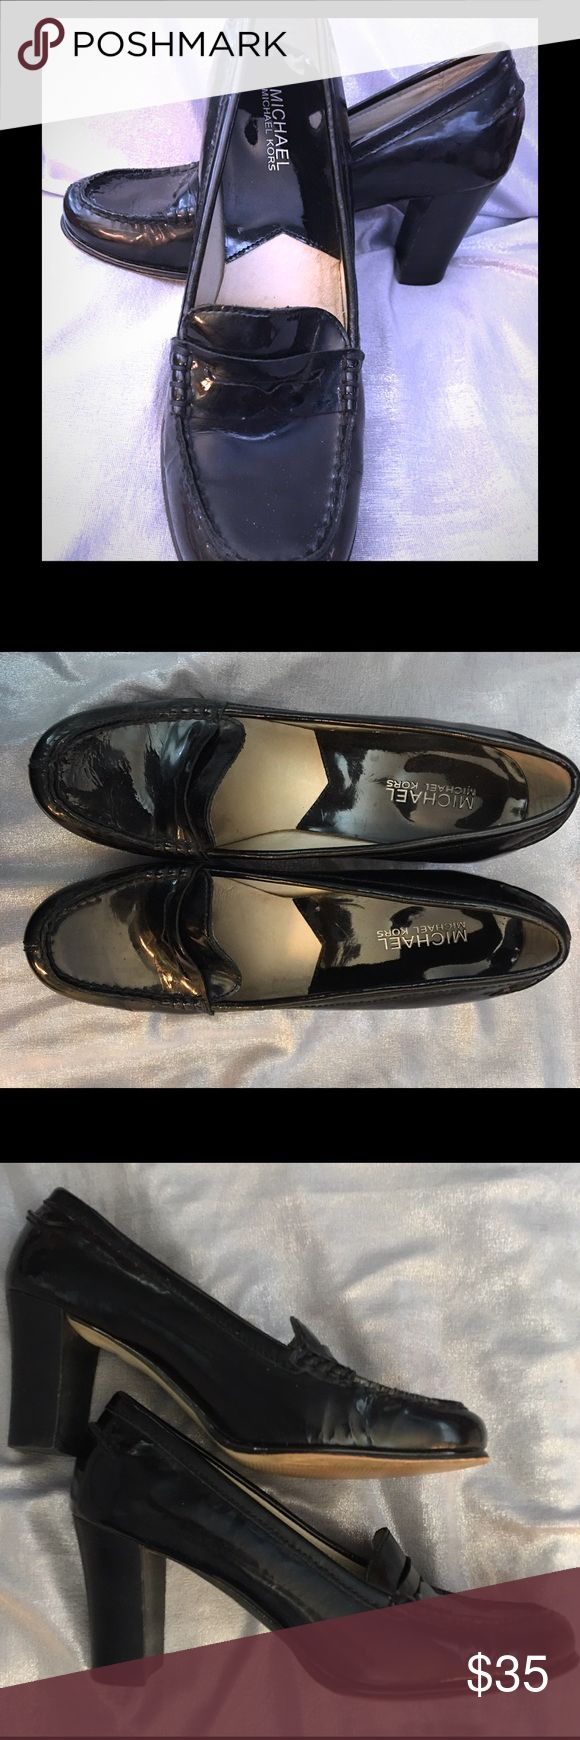 "Ultimate Penny Loafer by MK These are classic penny loafers with a twist. Black patent leather with rubber soles and heels 3"" wood heels. In very good condition. Michael Kors Shoes"